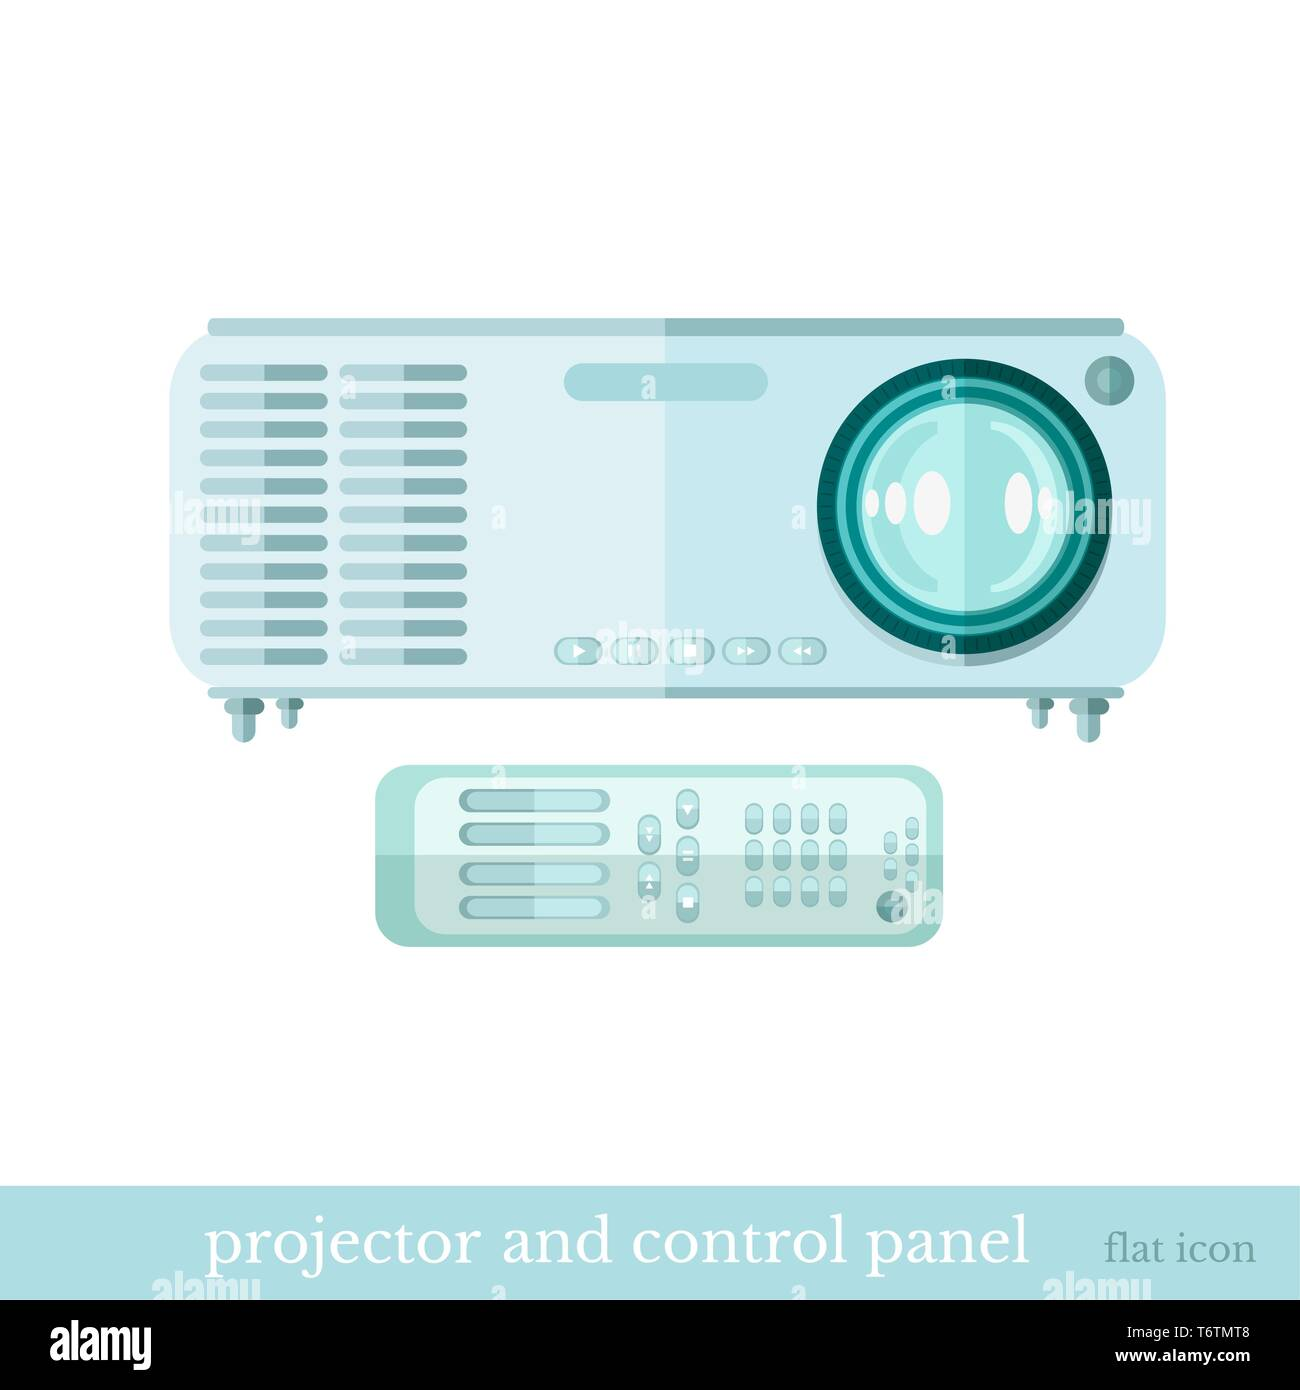 flat icon projector and controle panel object on white Stock Vector